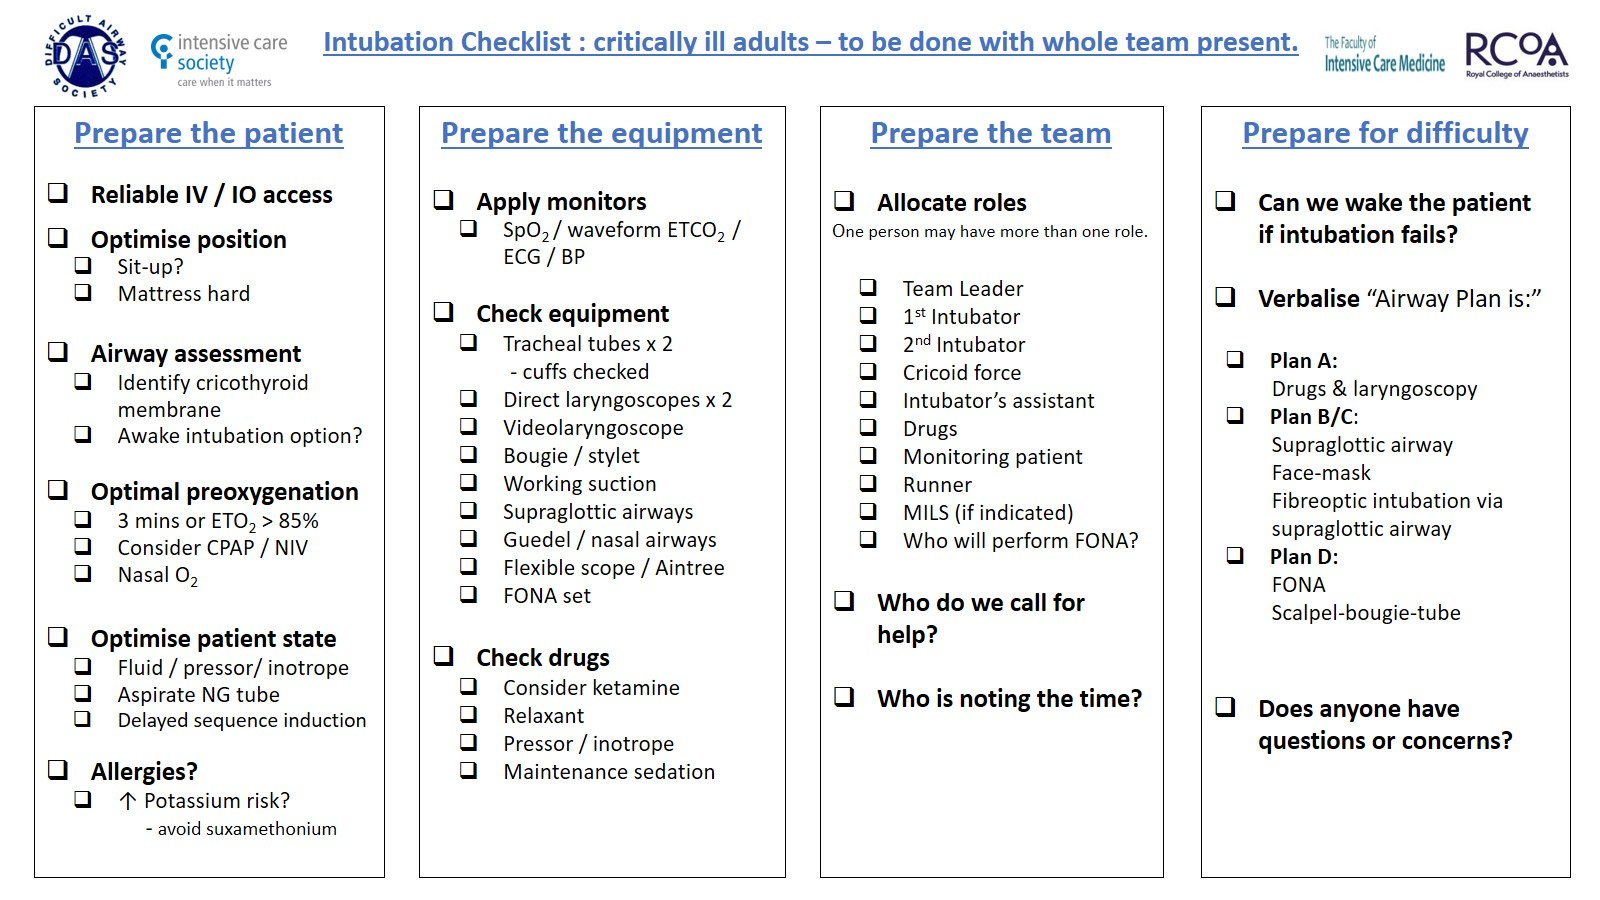 DAS guidelines for management of tracheal intubation in critically ill adults - Checklist